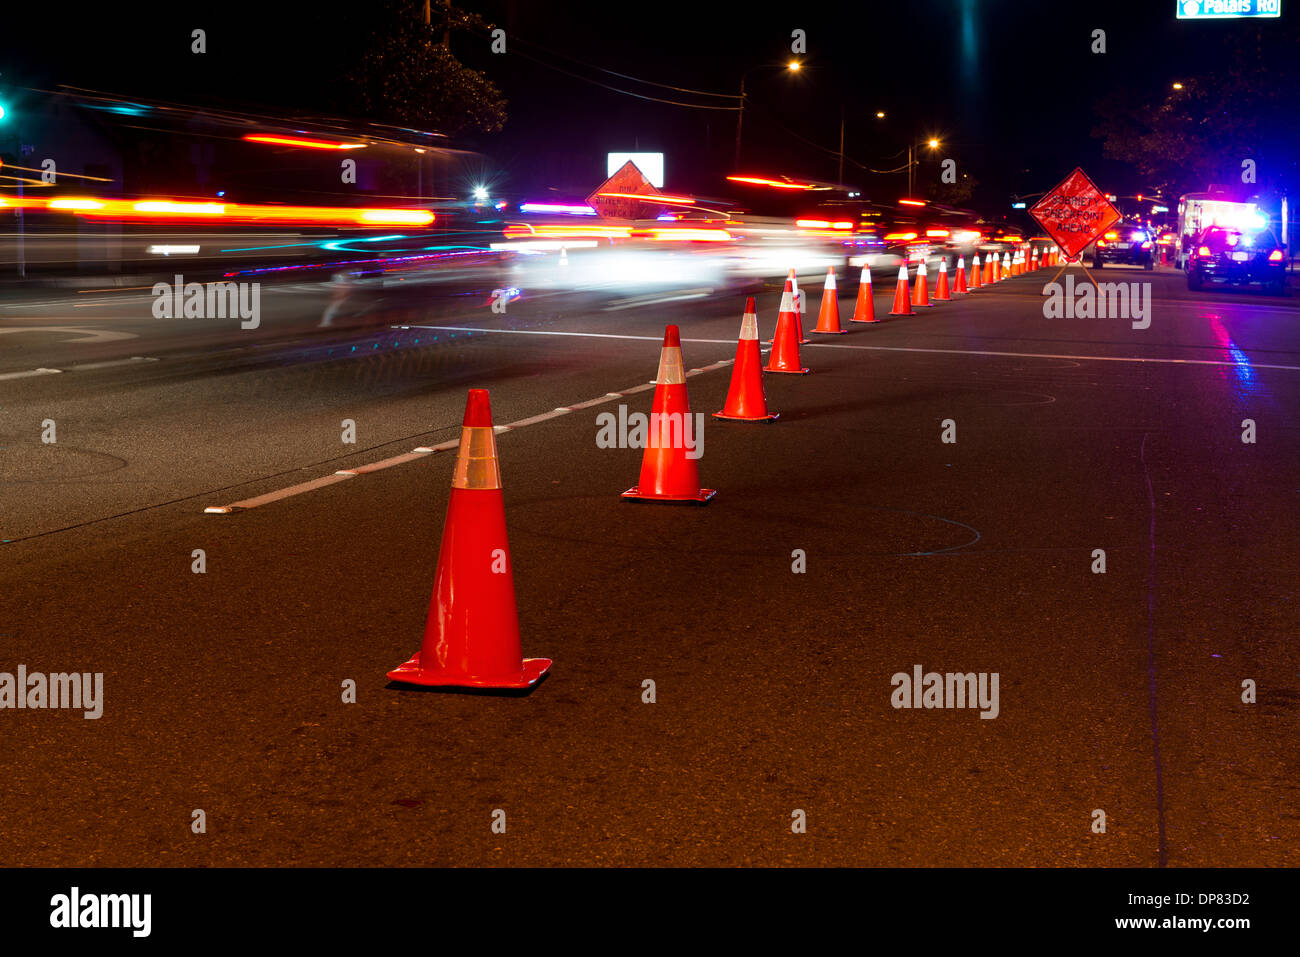 Traffic cones and traffic at a DUI check point in Anaheim. - Stock Image